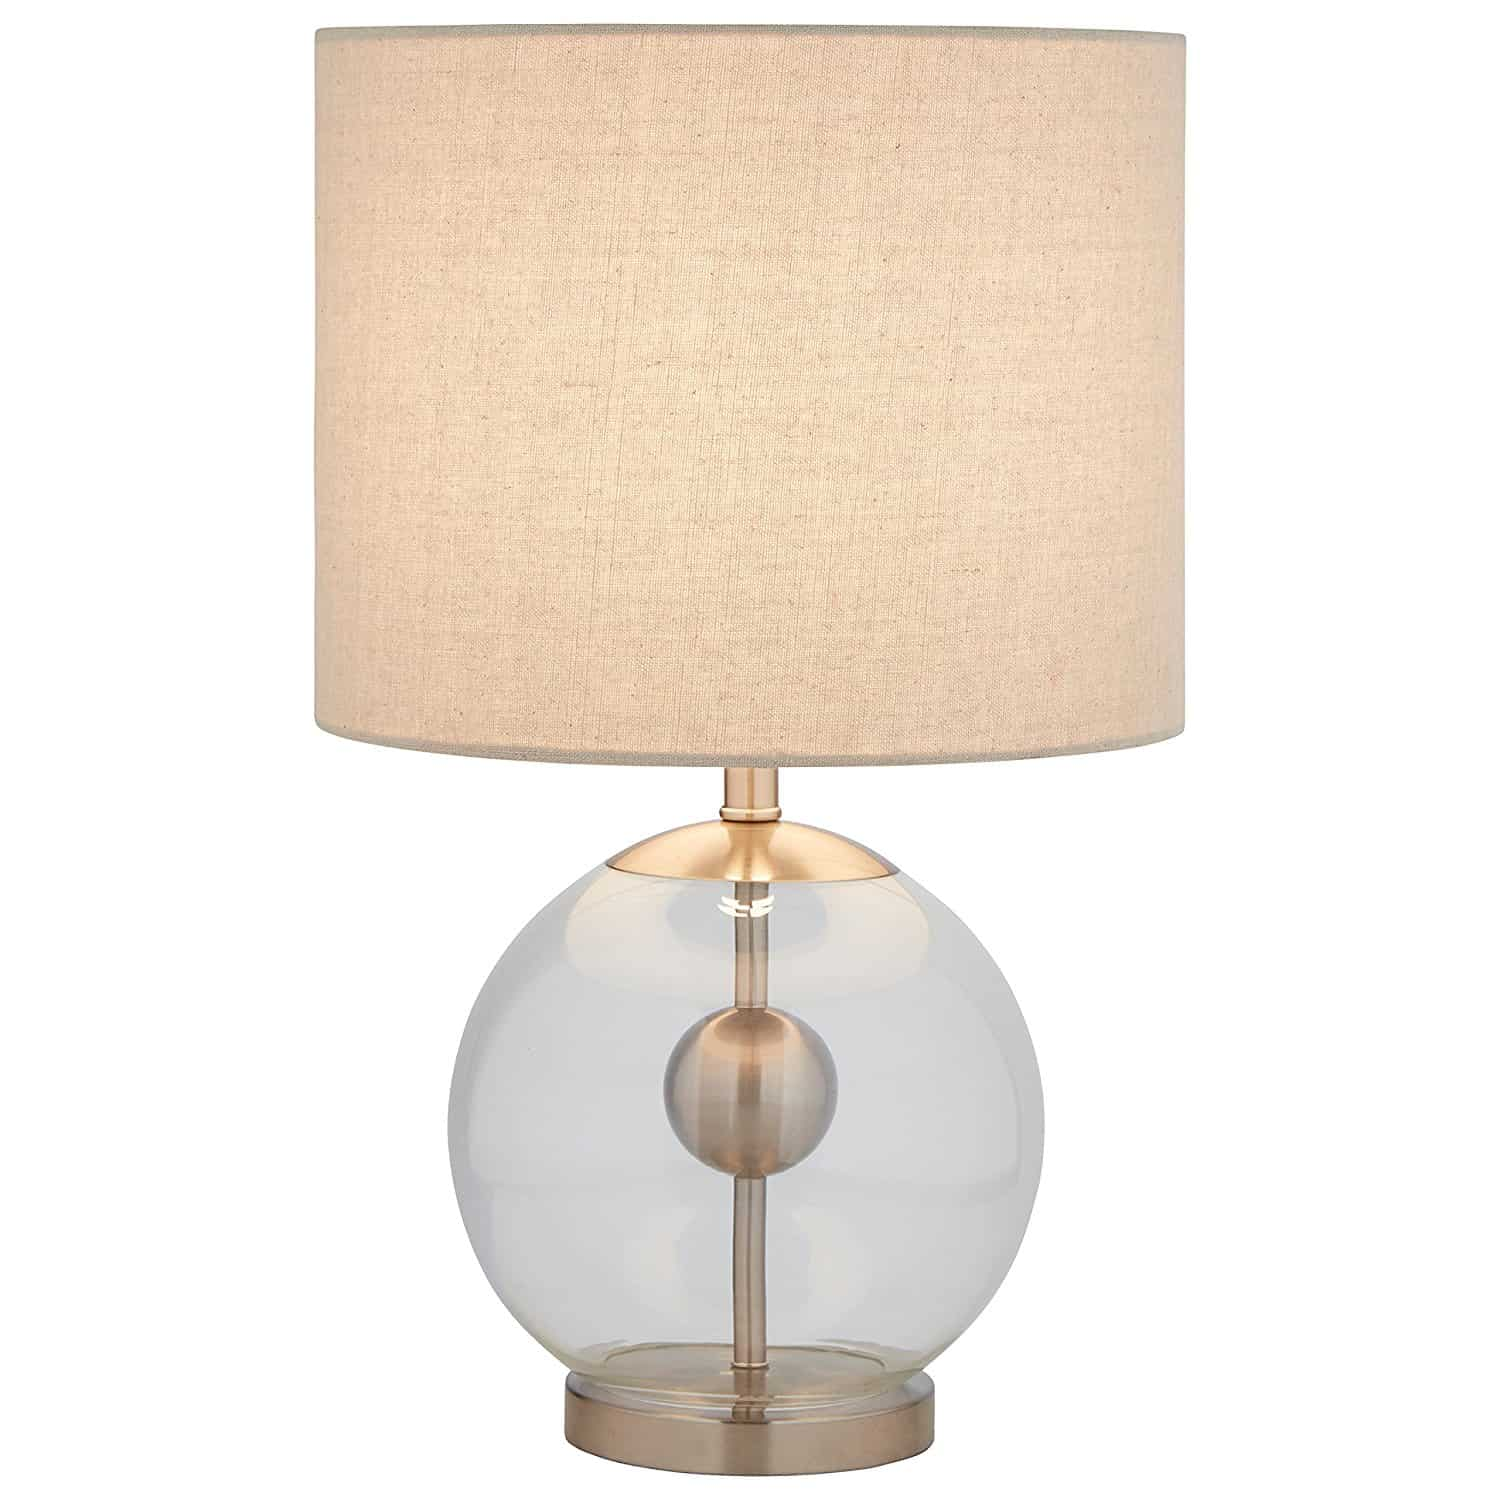 Stone & Beam Pearl Modern Glass Orb Lamp